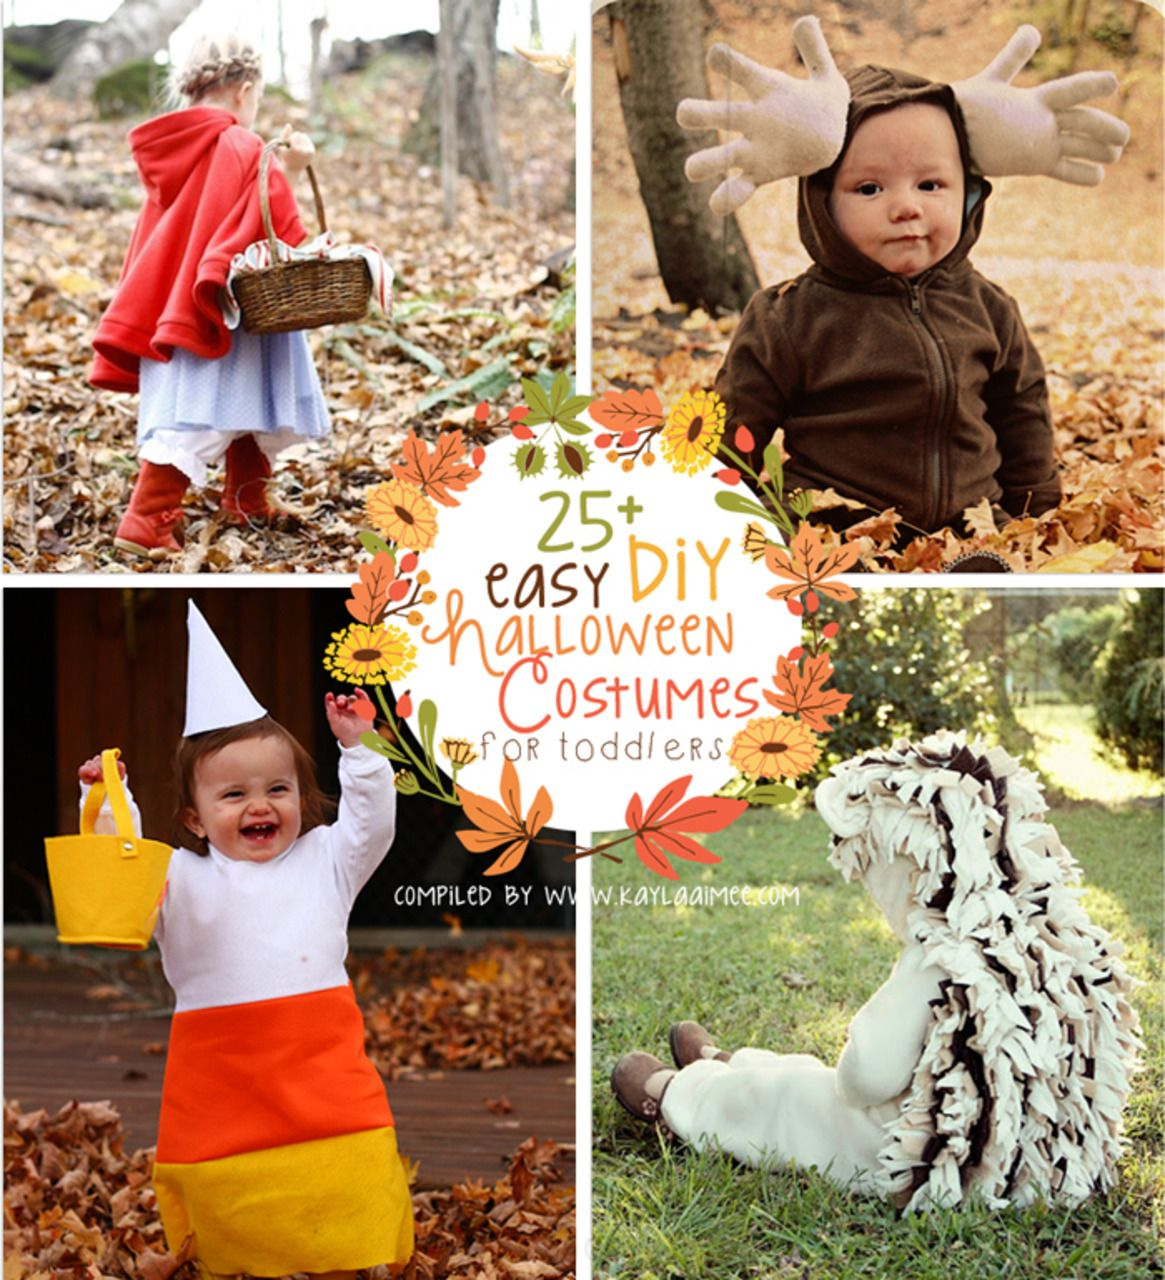 25 easy diy toddler halloween costumes for the last minute mom http 25 easy diy toddler halloween costumes for the last minute mom solutioingenieria Images